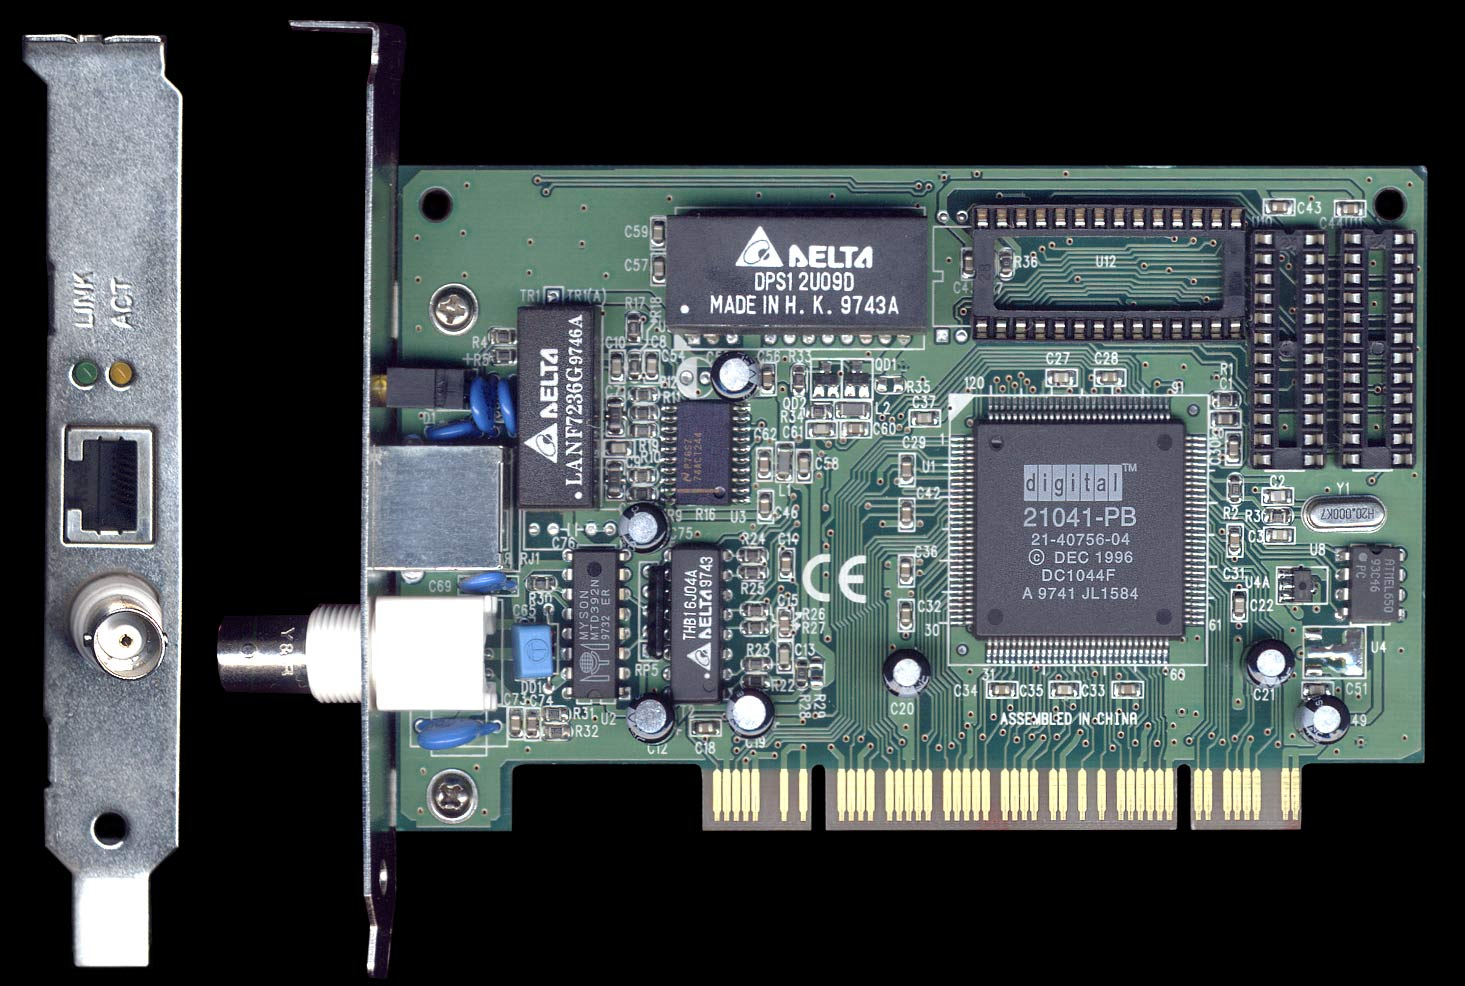 Dayna e.pci 10Mb Front